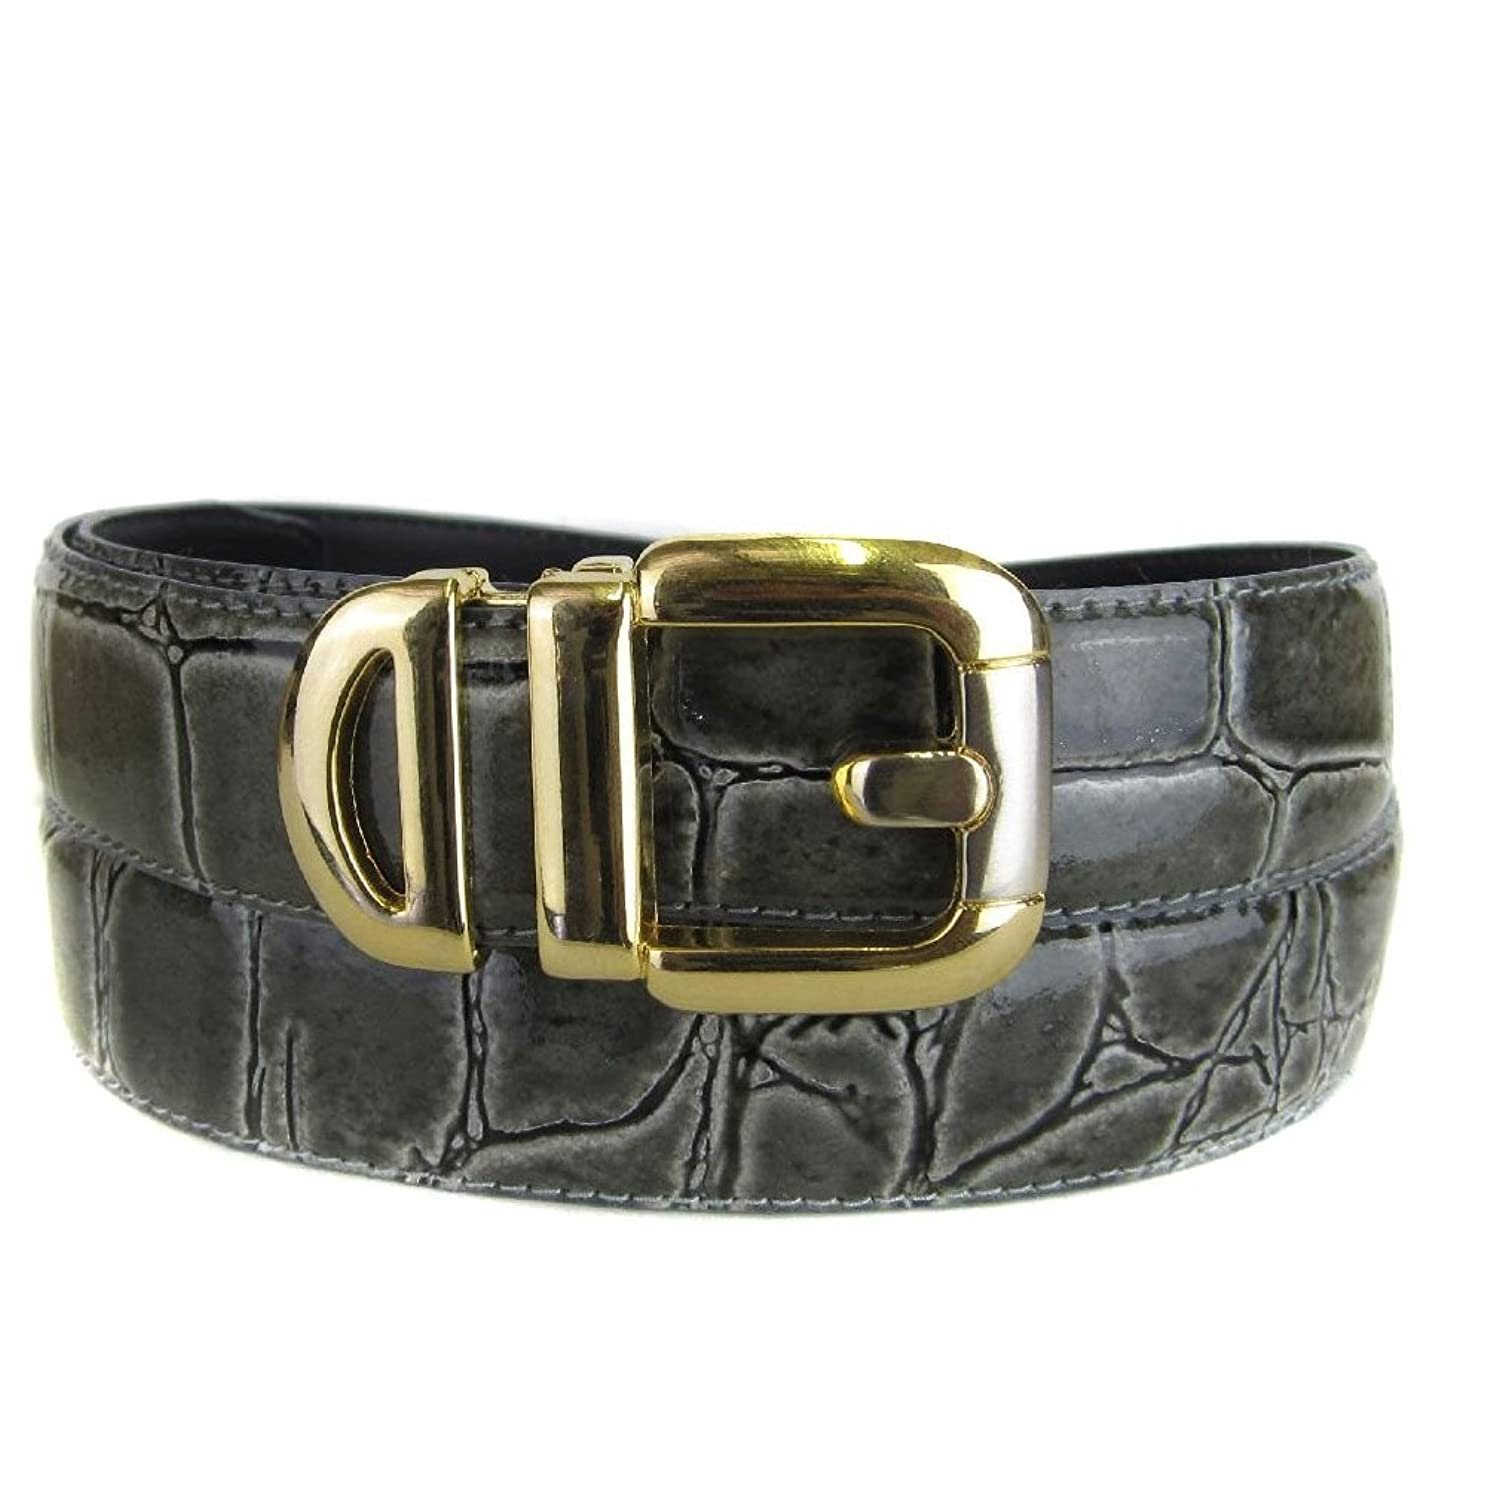 wholesale Gray Bonded Alligator Skin High Quality Fashion Dress Belt free shipping